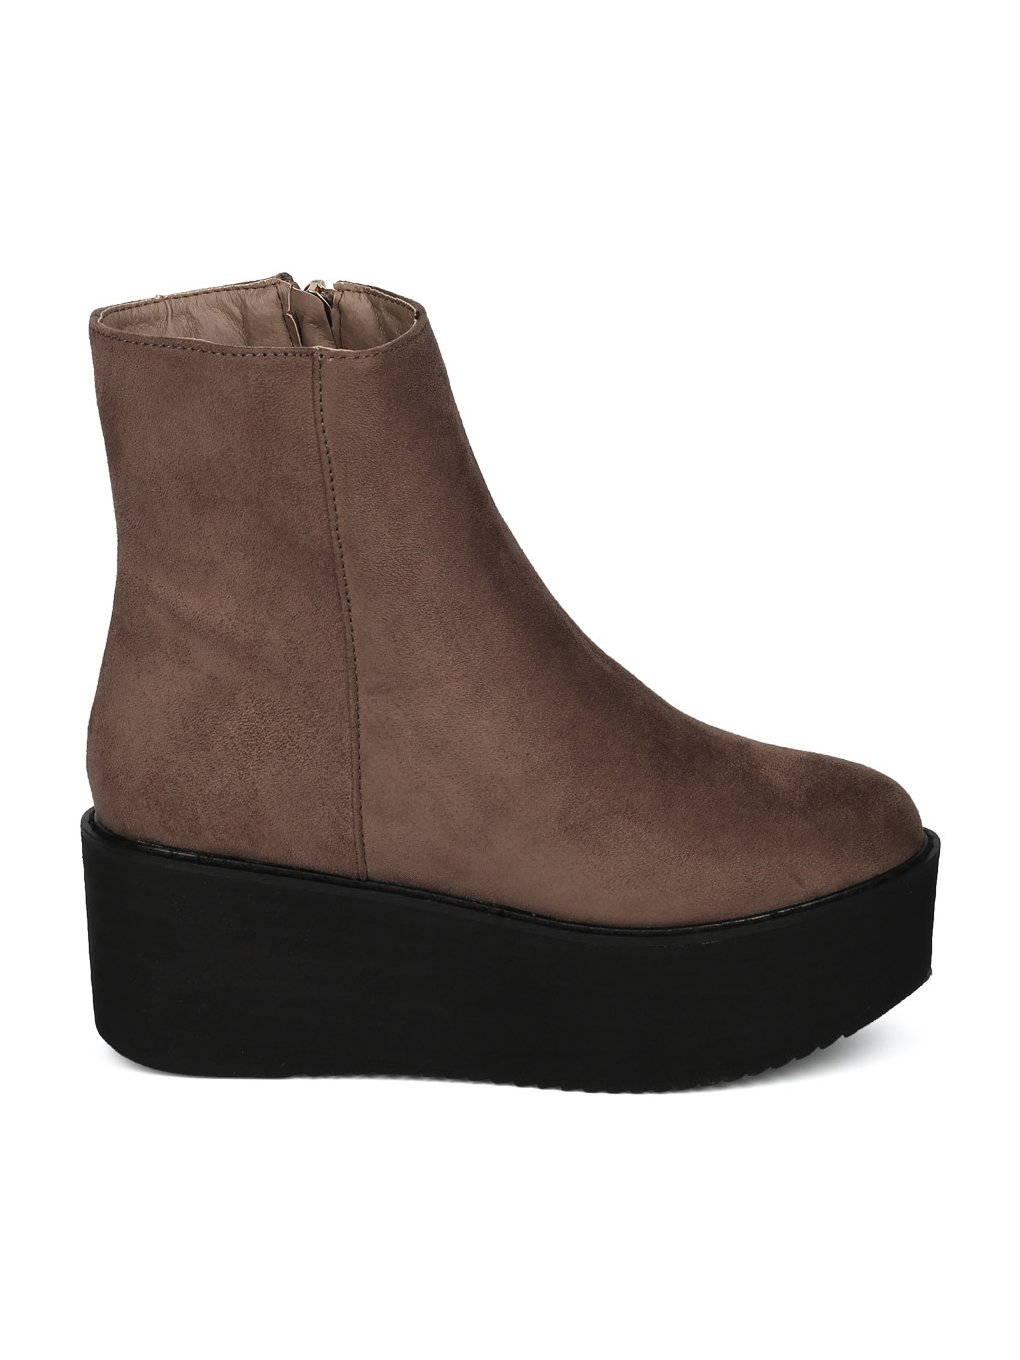 Indulge Hebe-I Women Round Toe Platform Creeper Ankle Bootie HE66 - Taupe Faux Suede (Size: 7.0) by Indulge (Image #1)